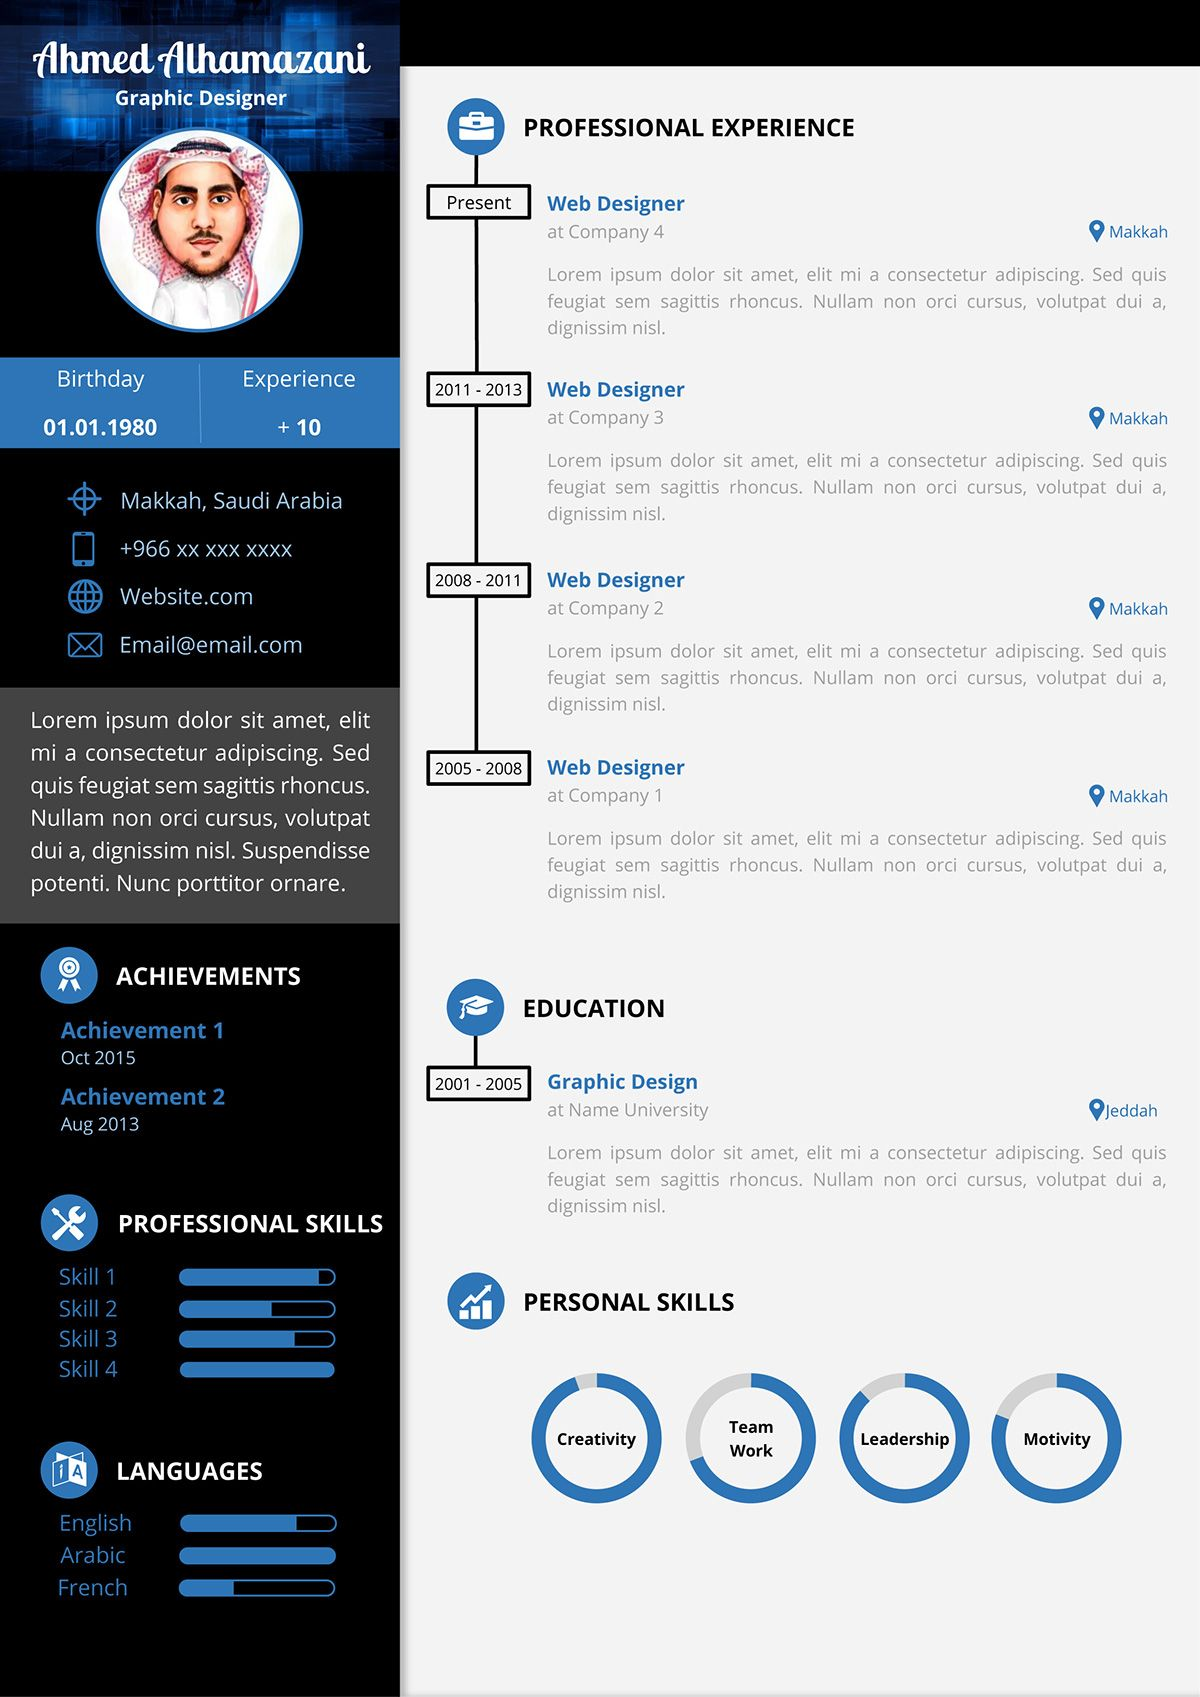 Download The Unlimited Word Resume Template On Behance Resume Template Free Resume Template Resume